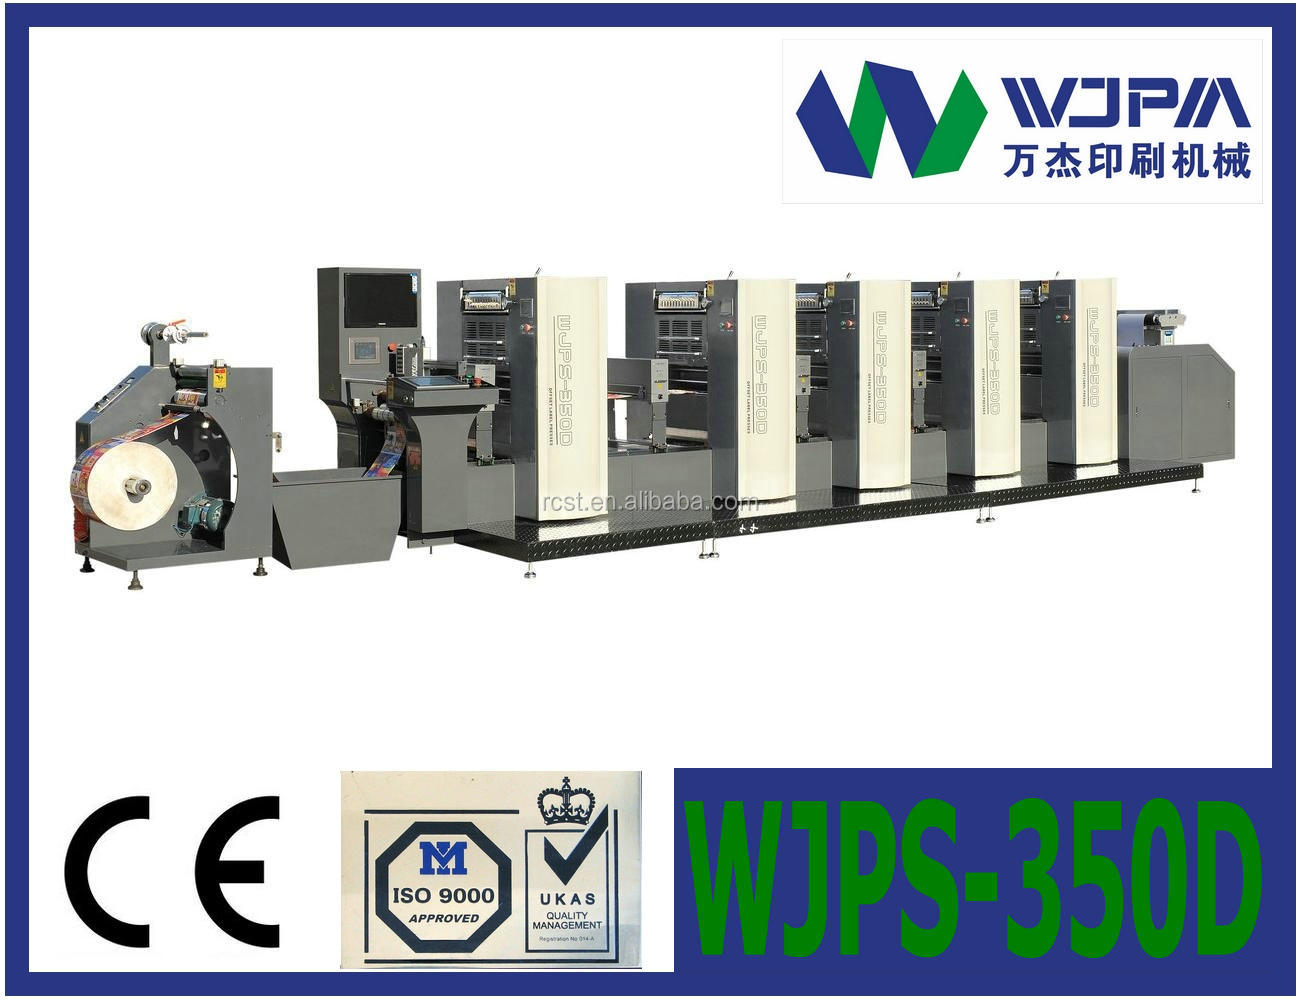 Shaftless Intermittent Rotary Offset Label Printing Machine(WJPS350D)